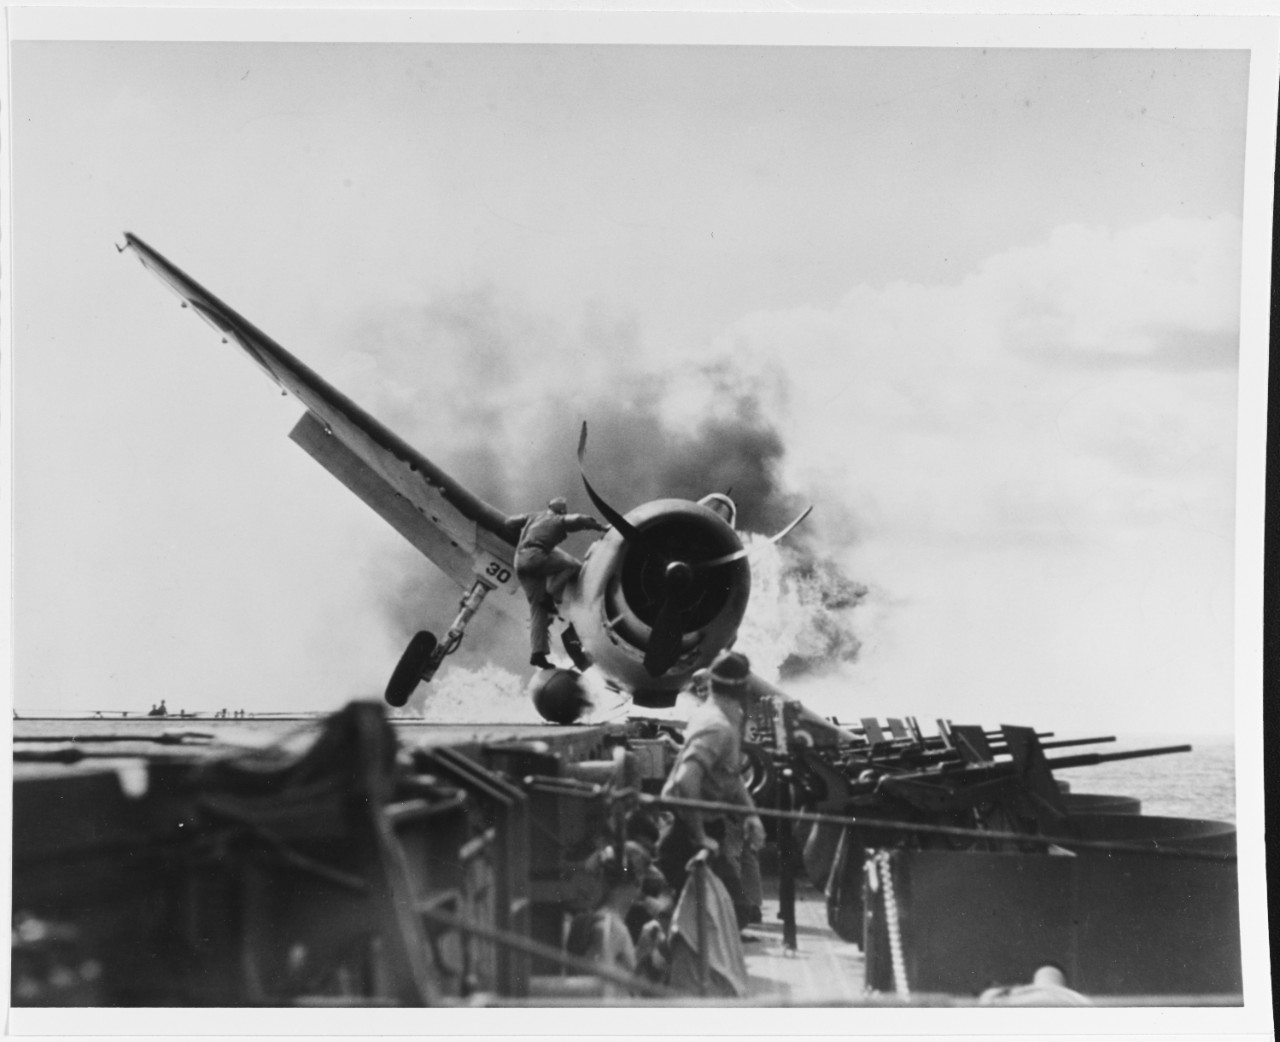 An F6F-3 of VF-2, Ens. Byron M. Johnson, crashes into the ship's port 20 millimeter gun gallery while landing and the Hellcat's belly fuel tank erupts into flames, 10 November 1943. Lt. Walter L. Chewning Jr., USNR, the catapult officer, scrambles onto the burning Hellcat to pull Johnson from the fire. (U.S. Navy Photograph 80-G-205473, National Archives and Records Administration, Still Pictures Branch, College Park, Md.)